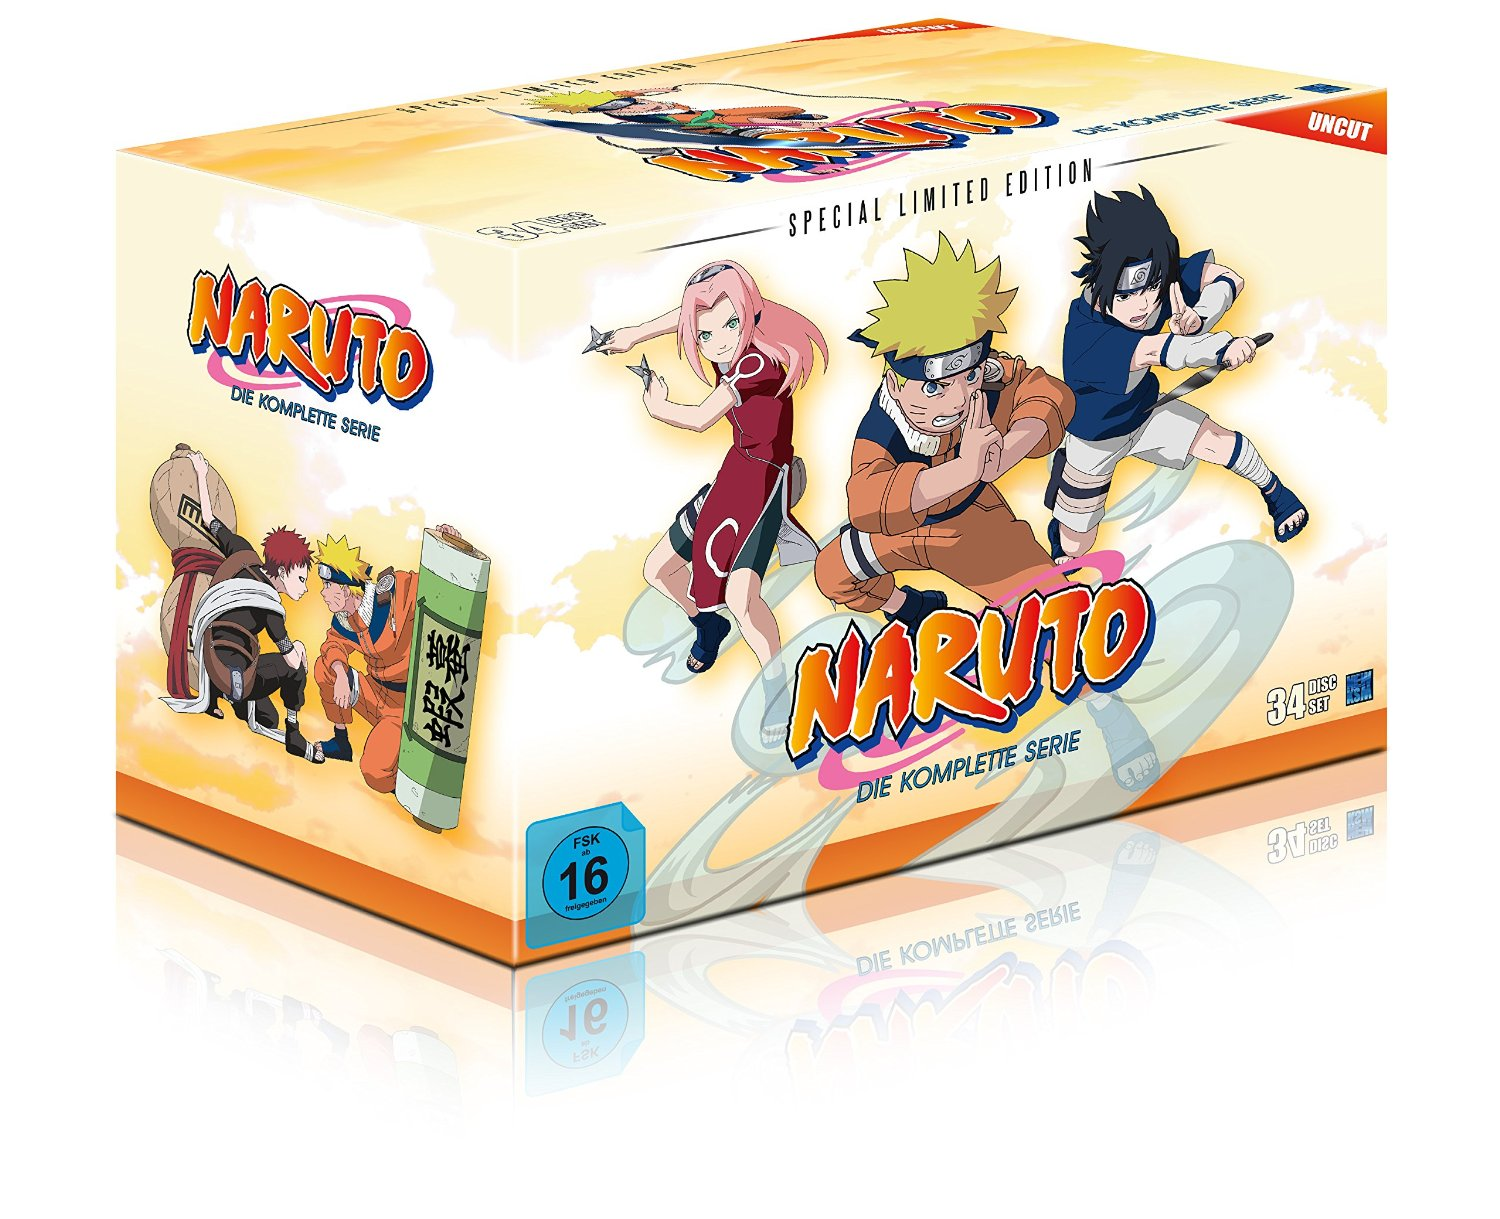 Naruto Adventskalender 2018